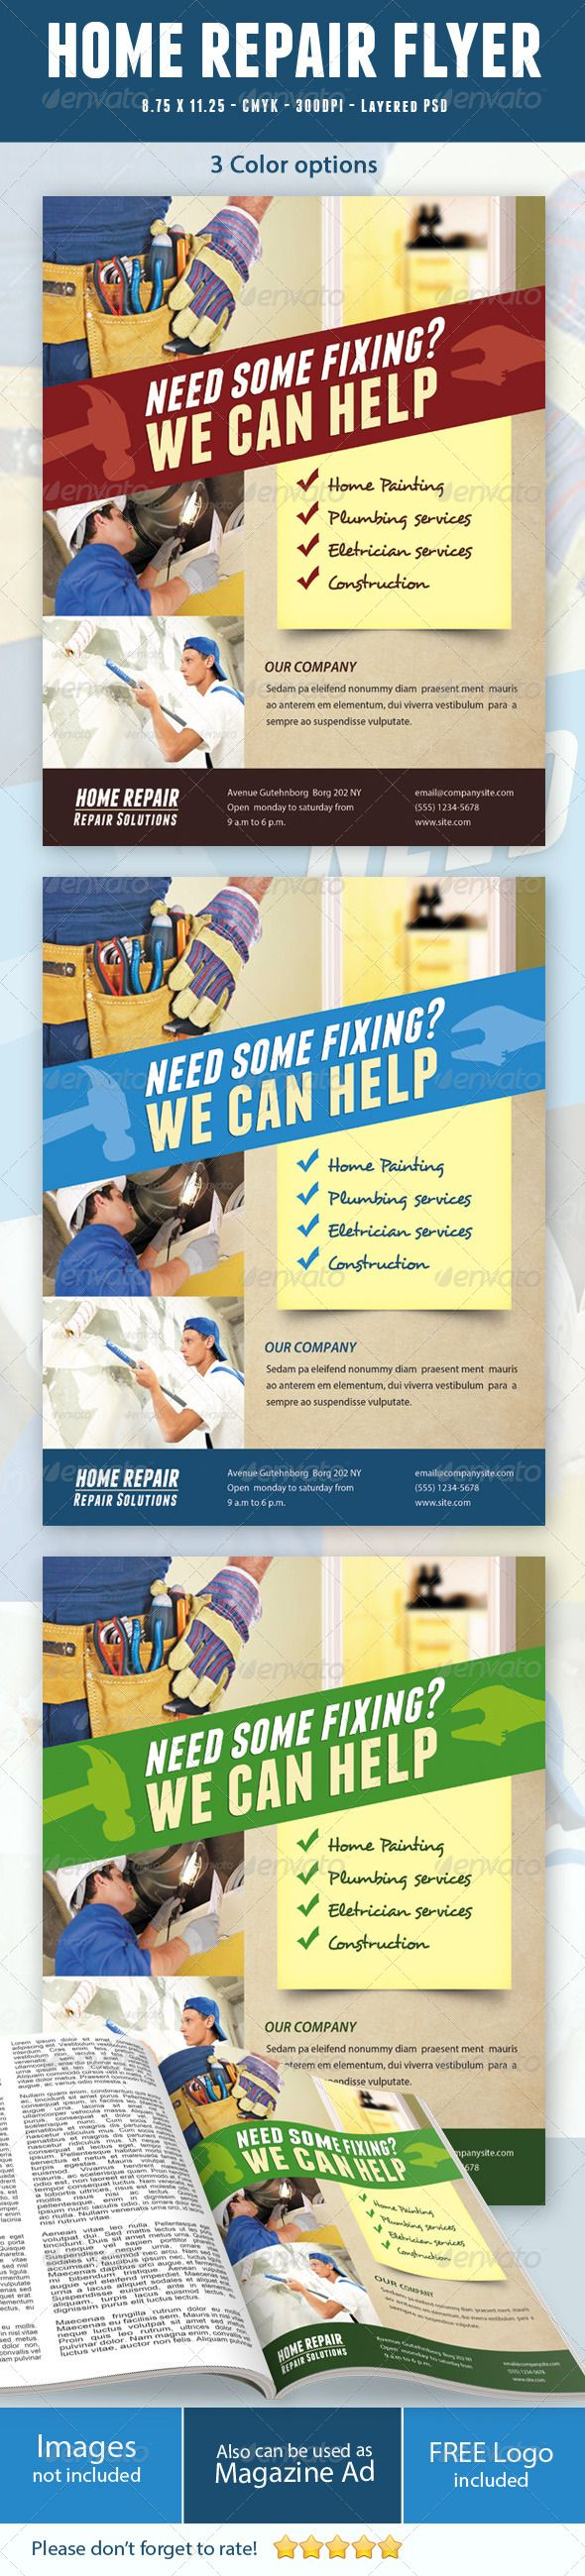 Home Repair Flyer  #GraphicRiver        Home Repair Flyer!   This Flyer Can be used in any Business like home repair,handy man,home improvement, etc     CMYK Color profile  8.75×11.25 including 0.25 bleed  300 DPI  Easy to Edit  Logo Included  Organized layers  Ready to print  Free Fonts  3 colour combinations   Font Used:  Myriad pro,Desyrel and Franchise   Images are NOT included